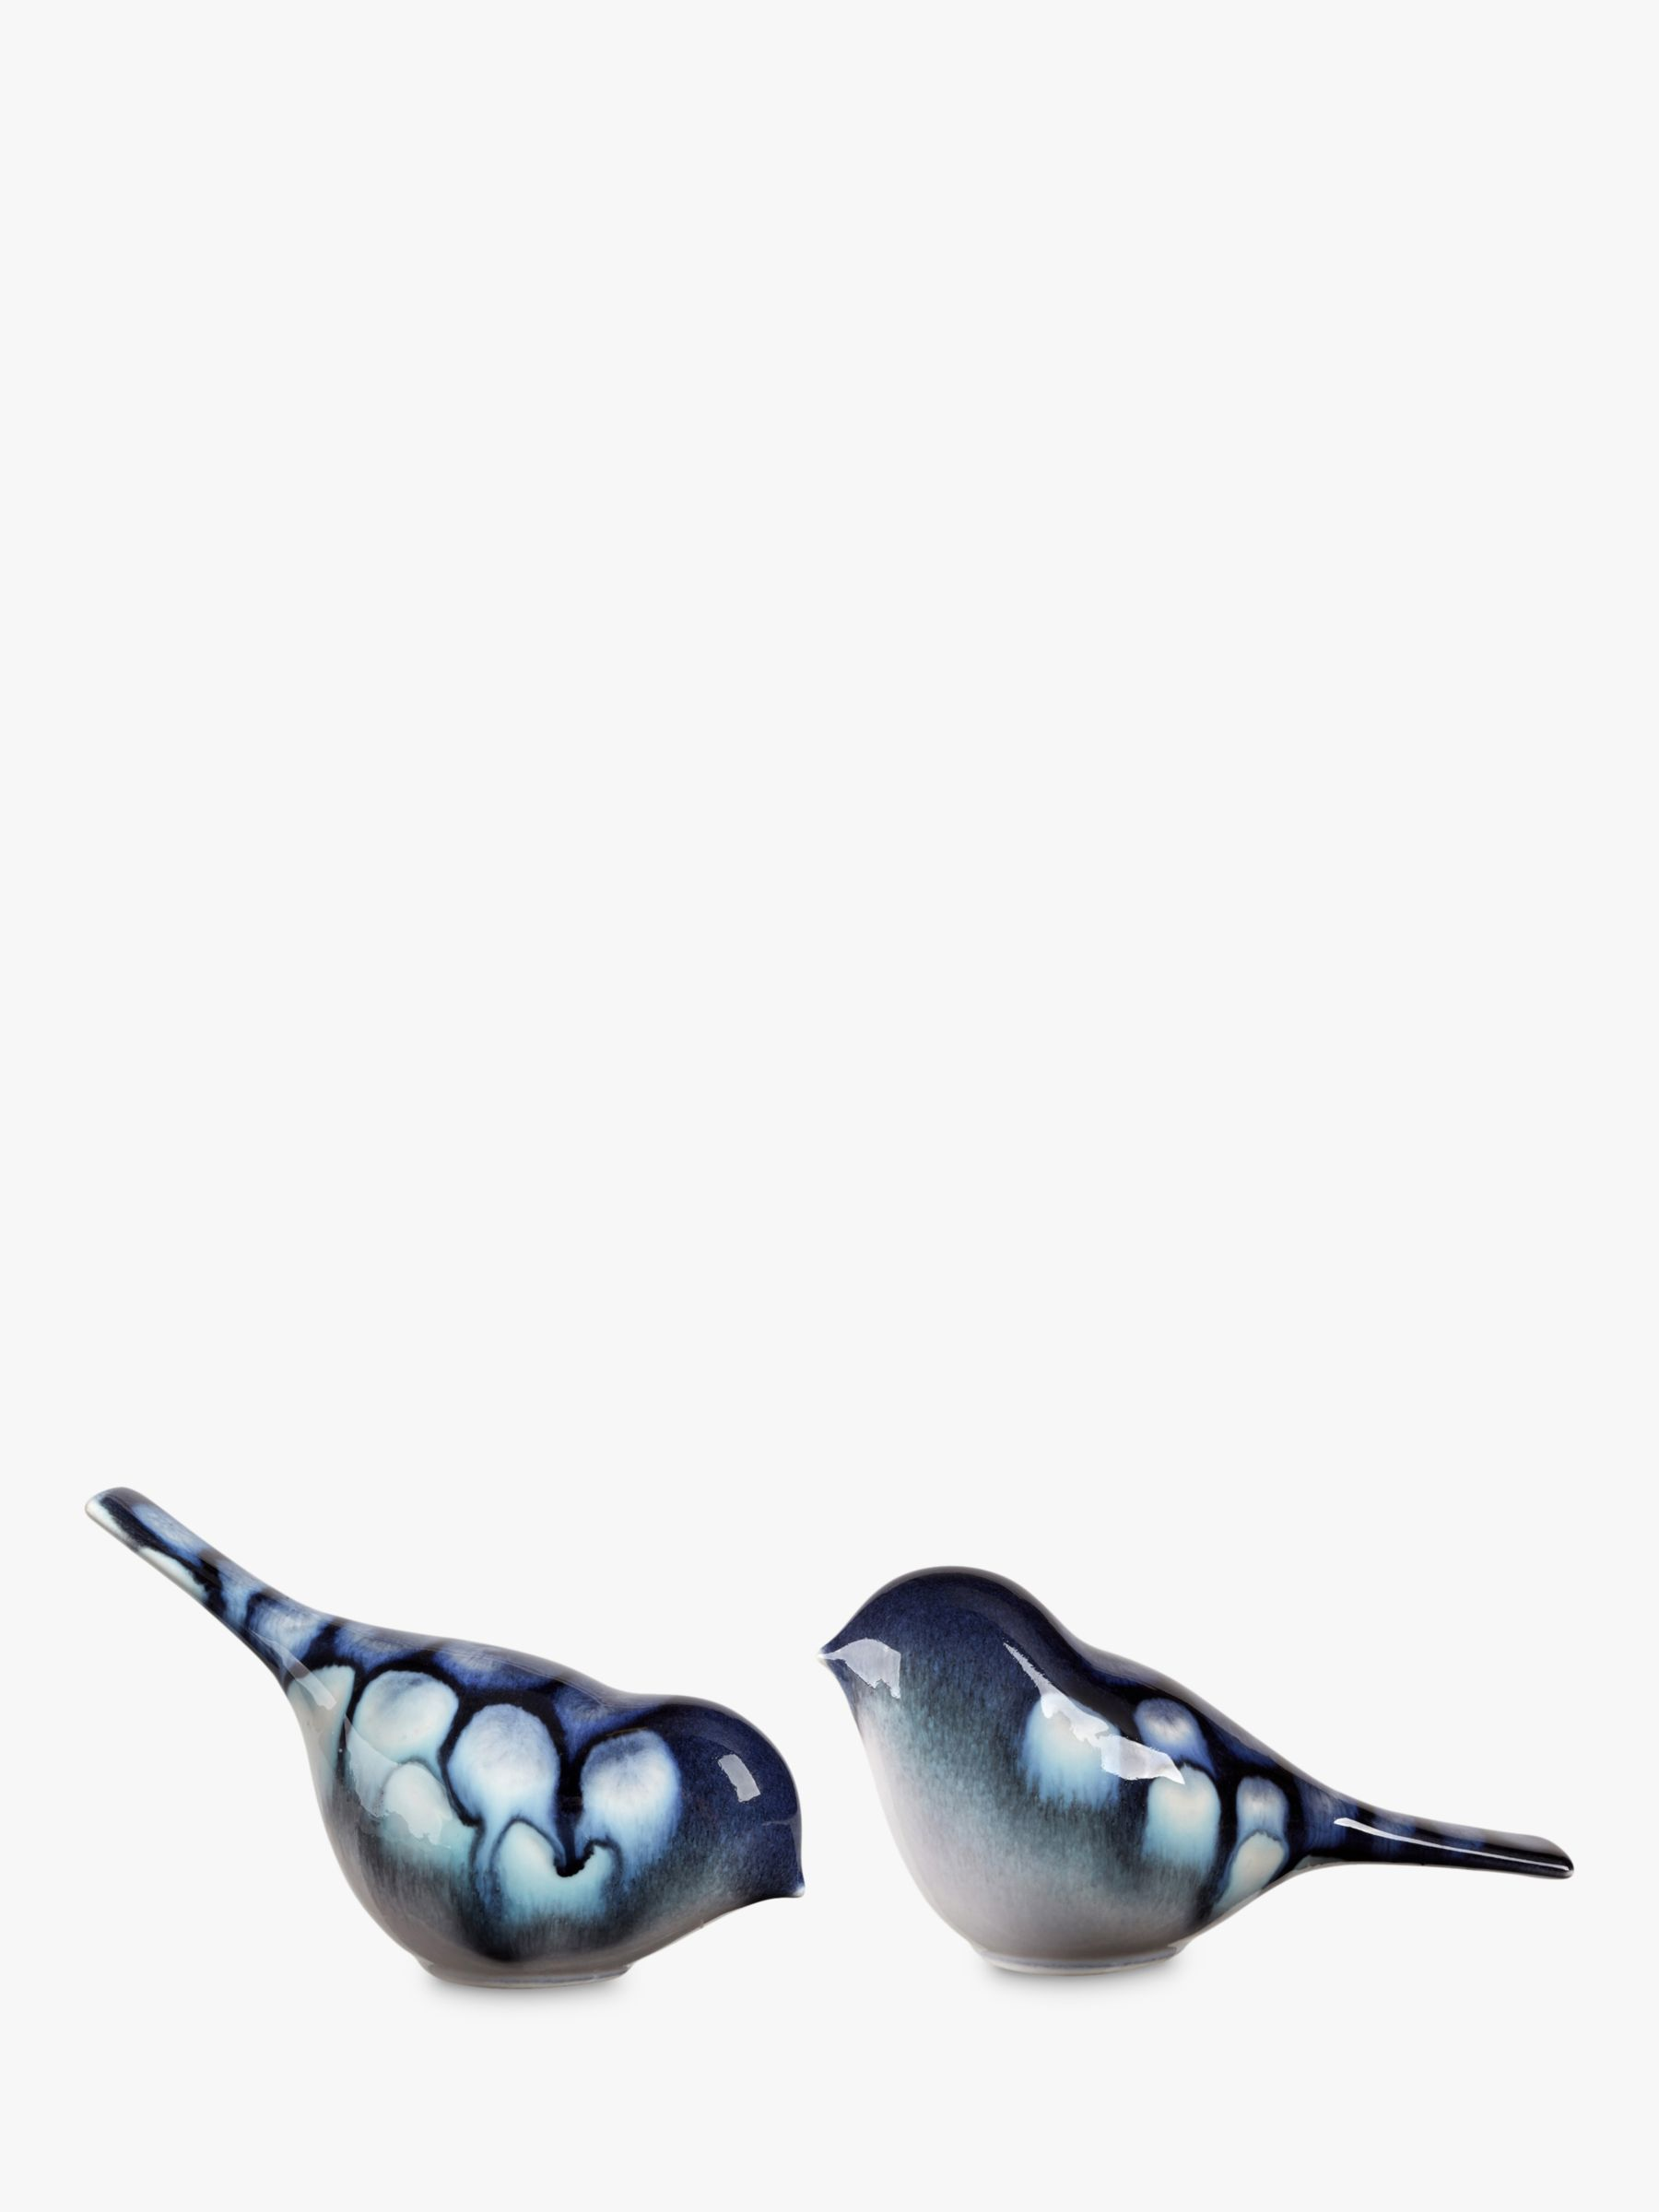 Poole Pottery Poole Pottery Ocean Bird Ornament, Set of 2